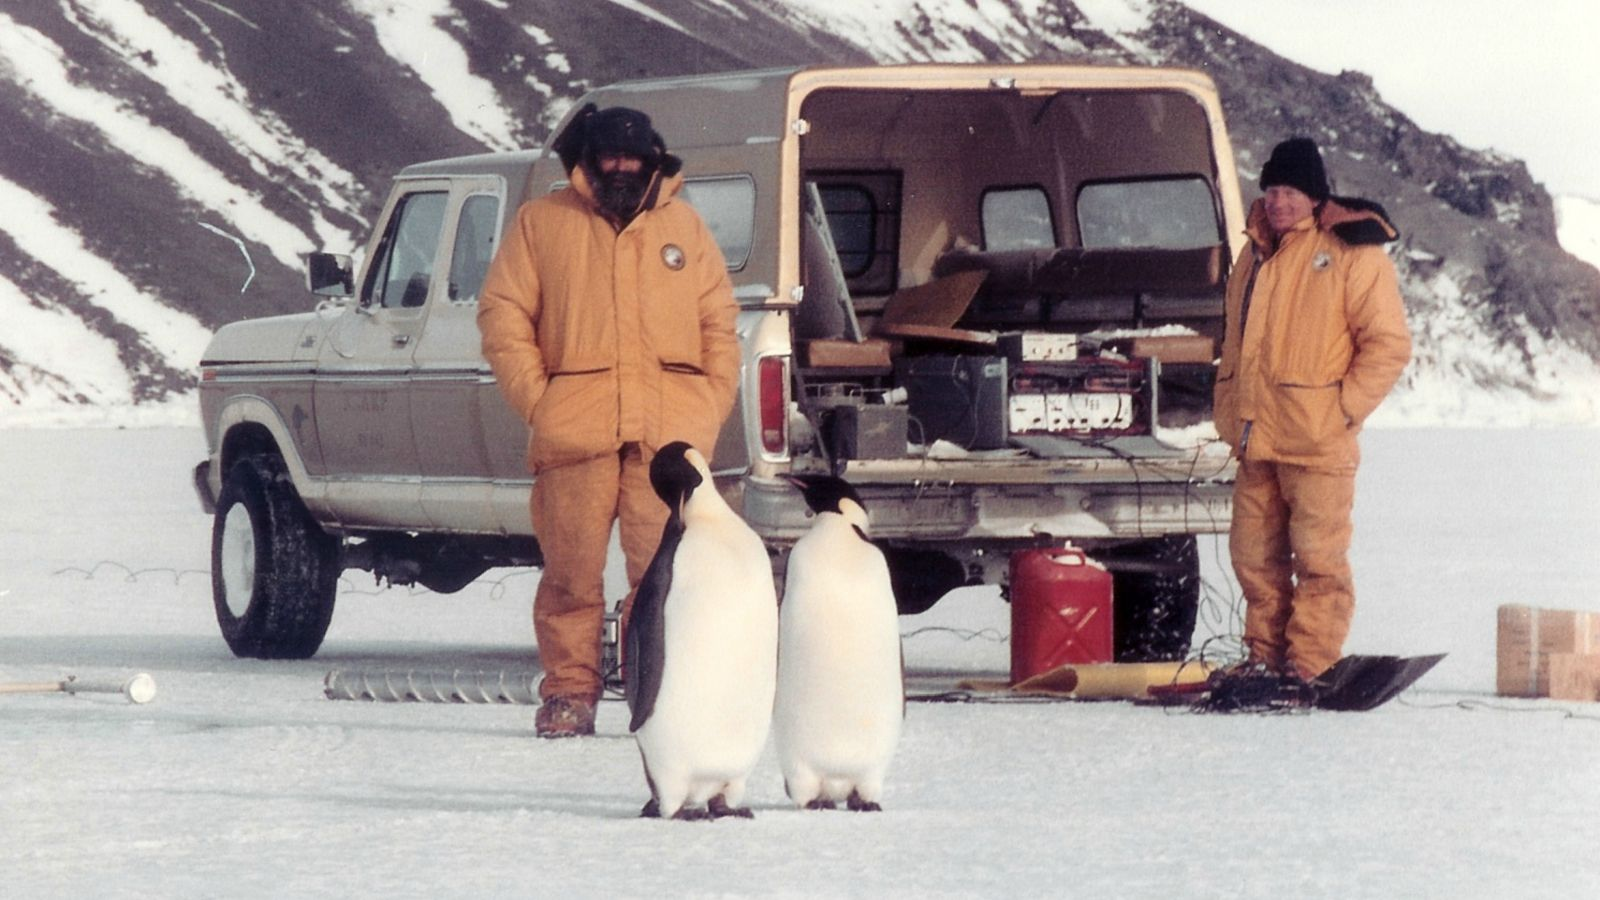 Two men in jumpsuits in Antarctica with penguins in foreground.